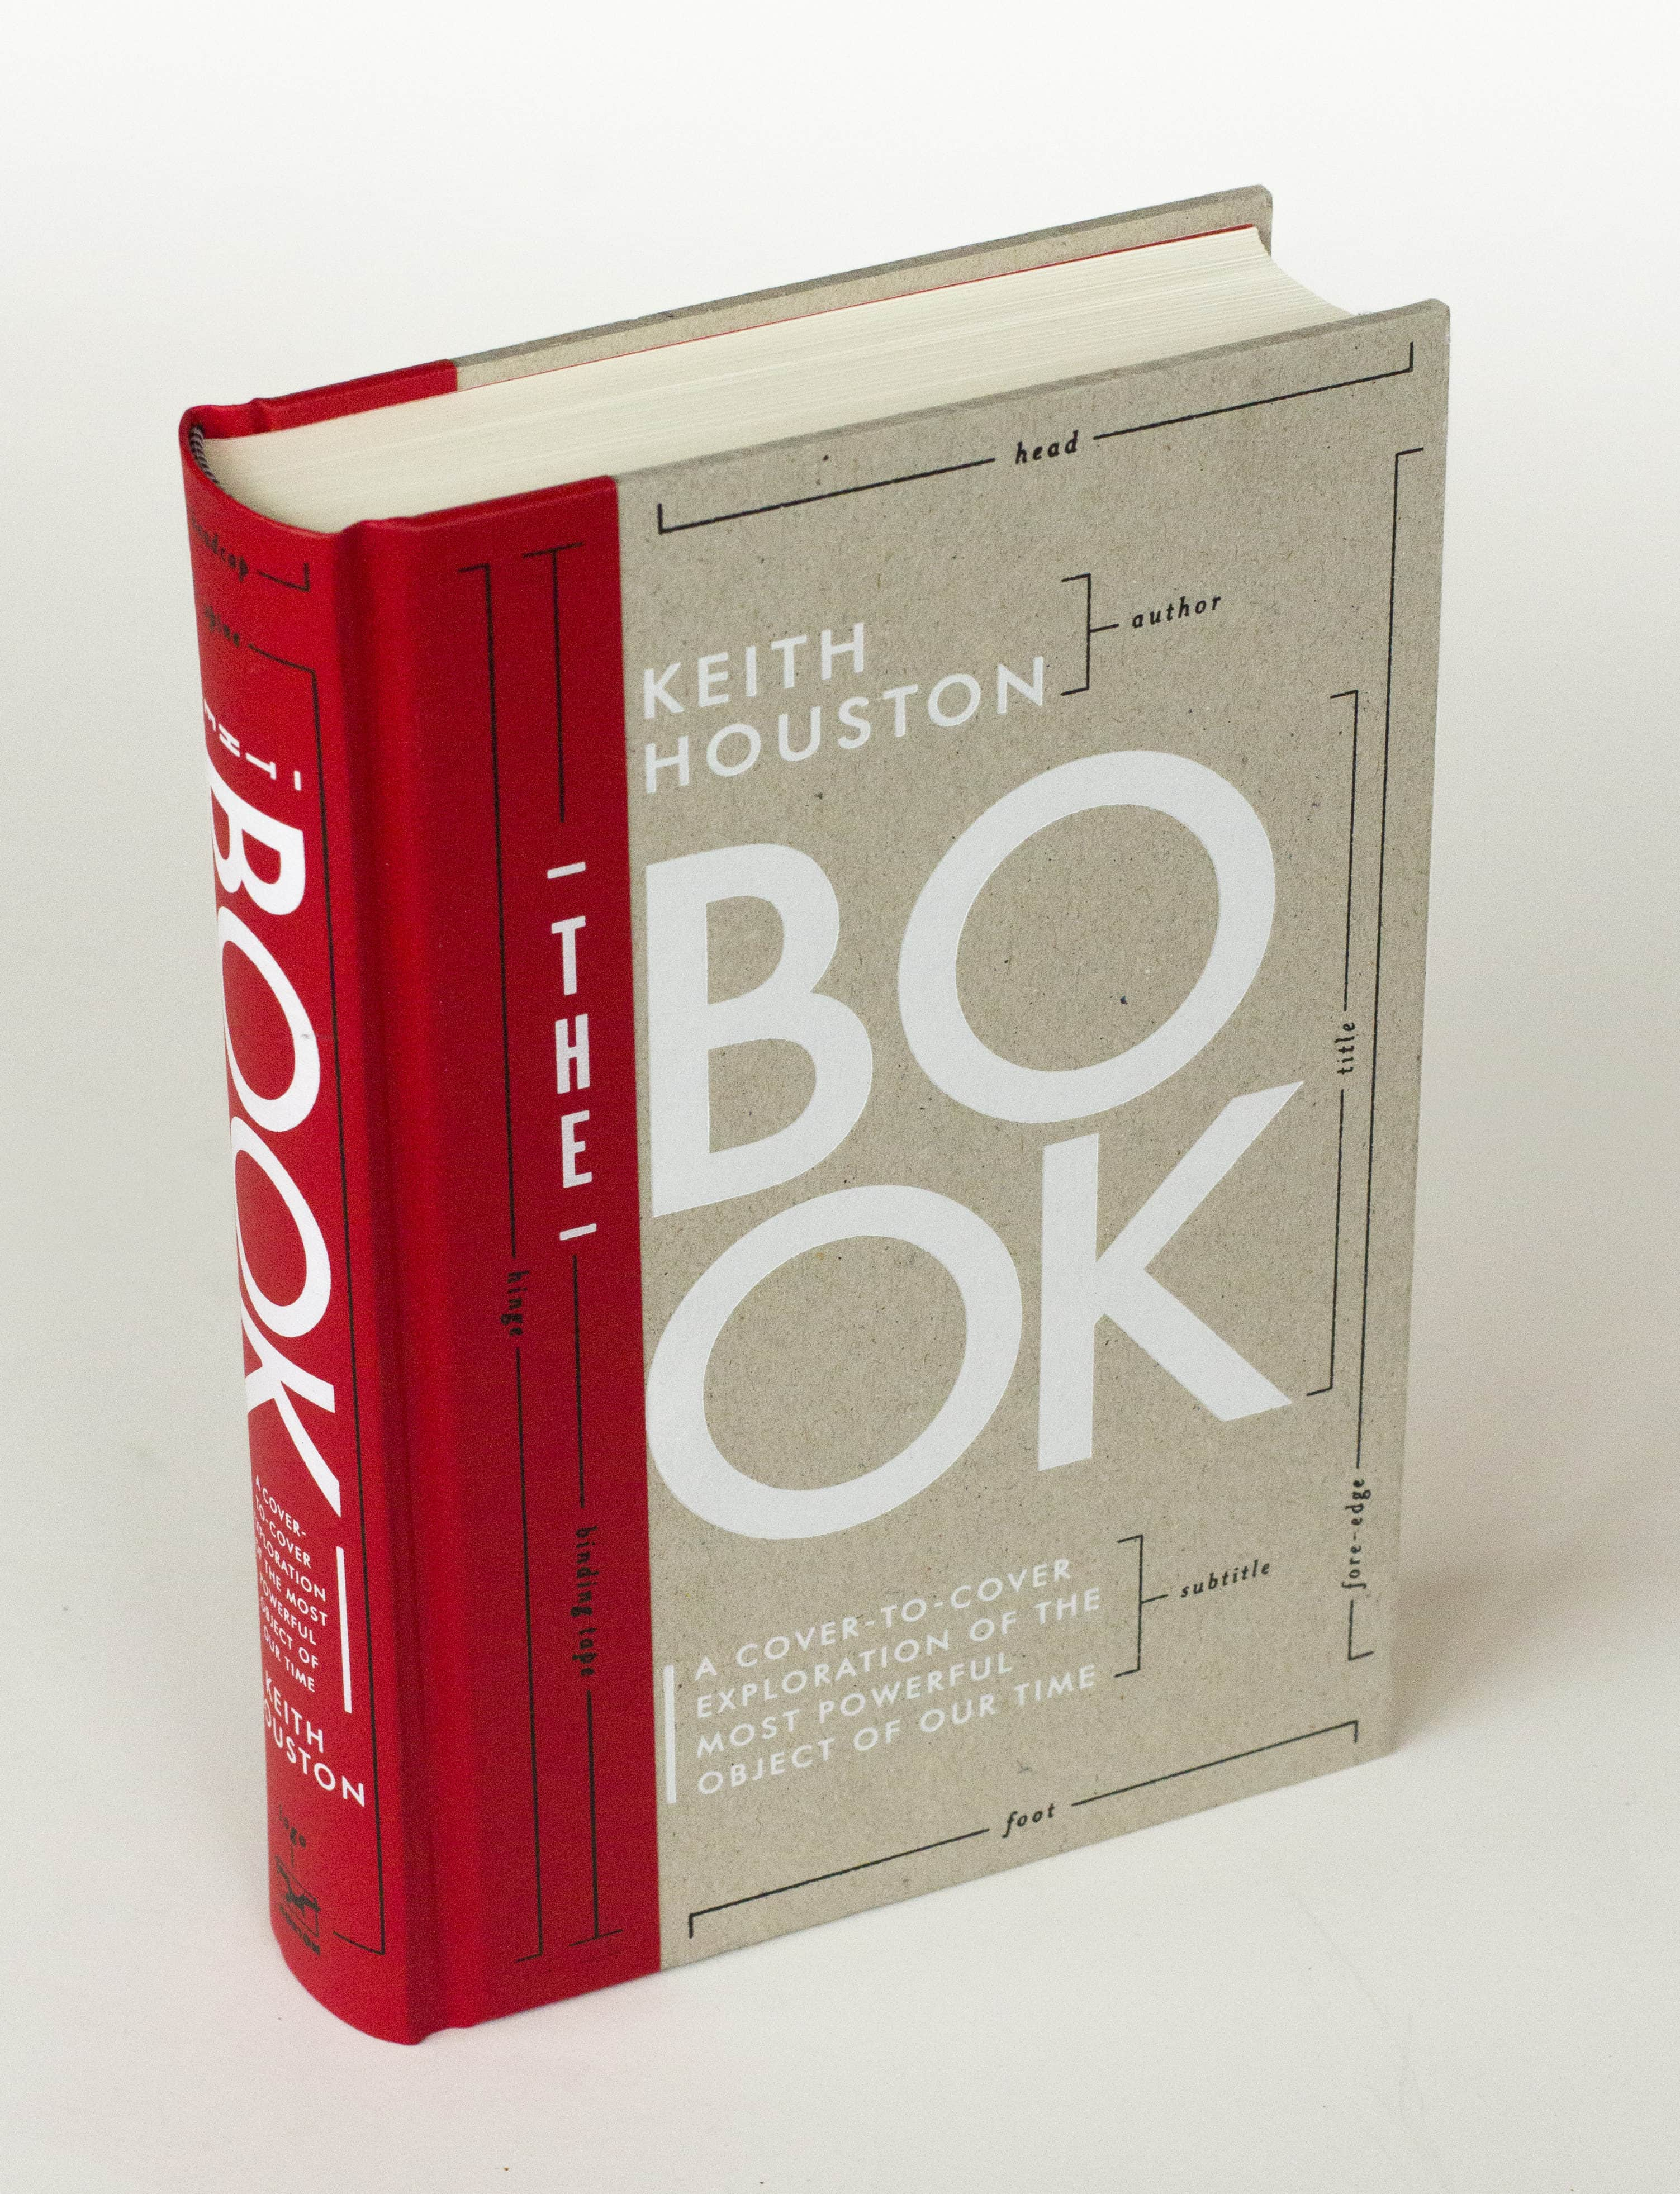 The Book: A Cover-to-Cover Exploration of the Most Powerful Object ...